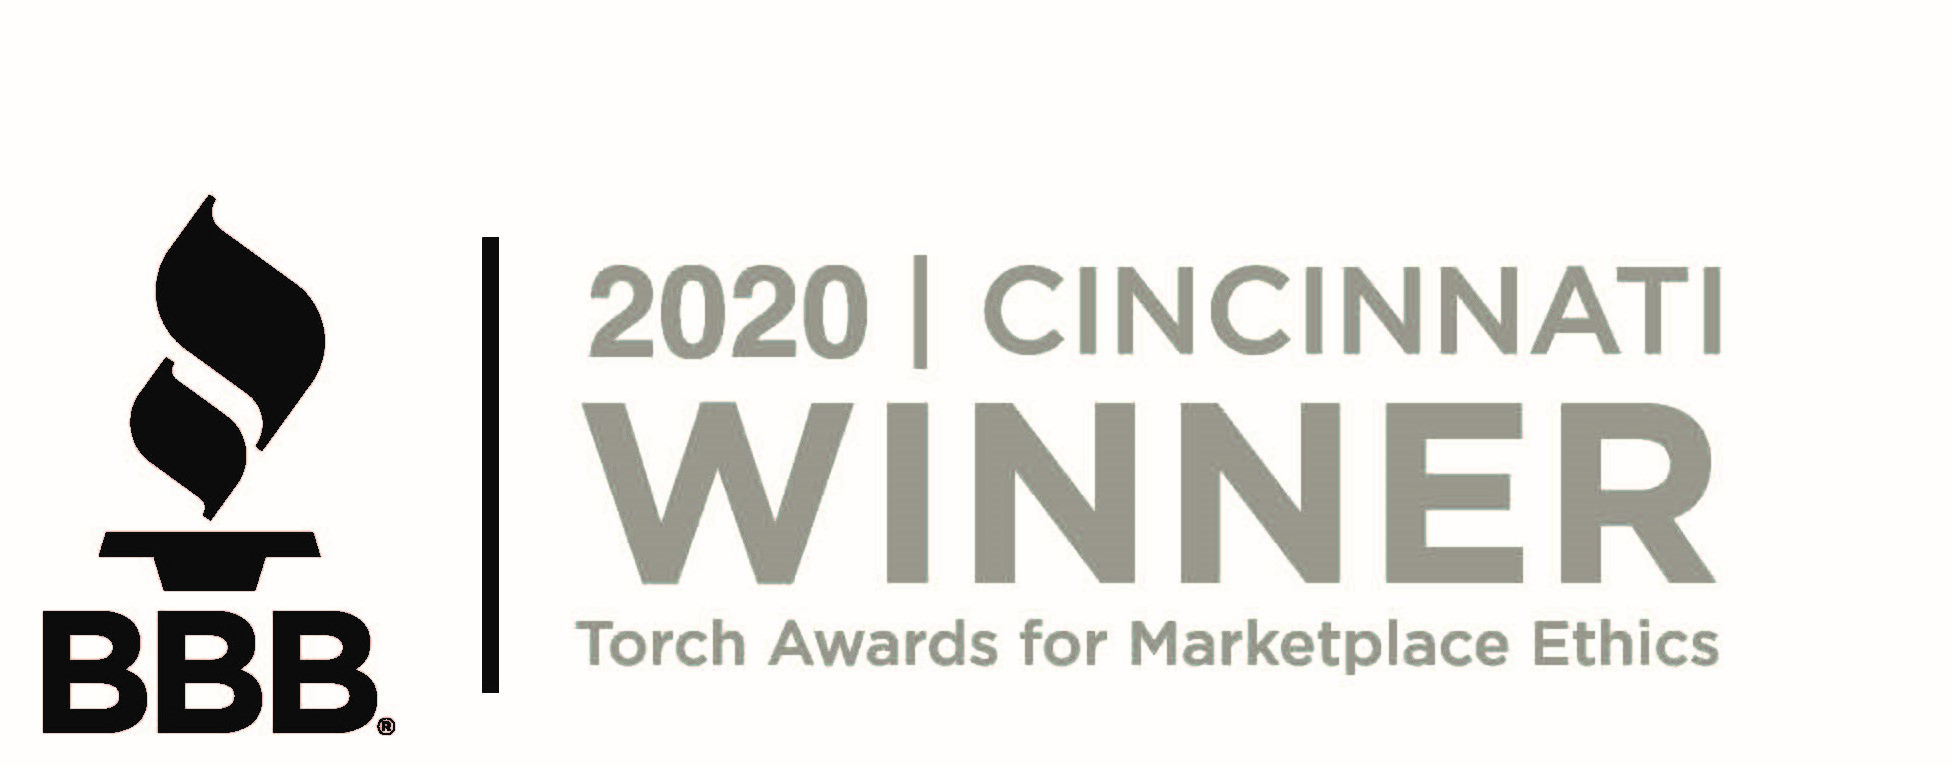 Torch Award For Marketplace Ethics